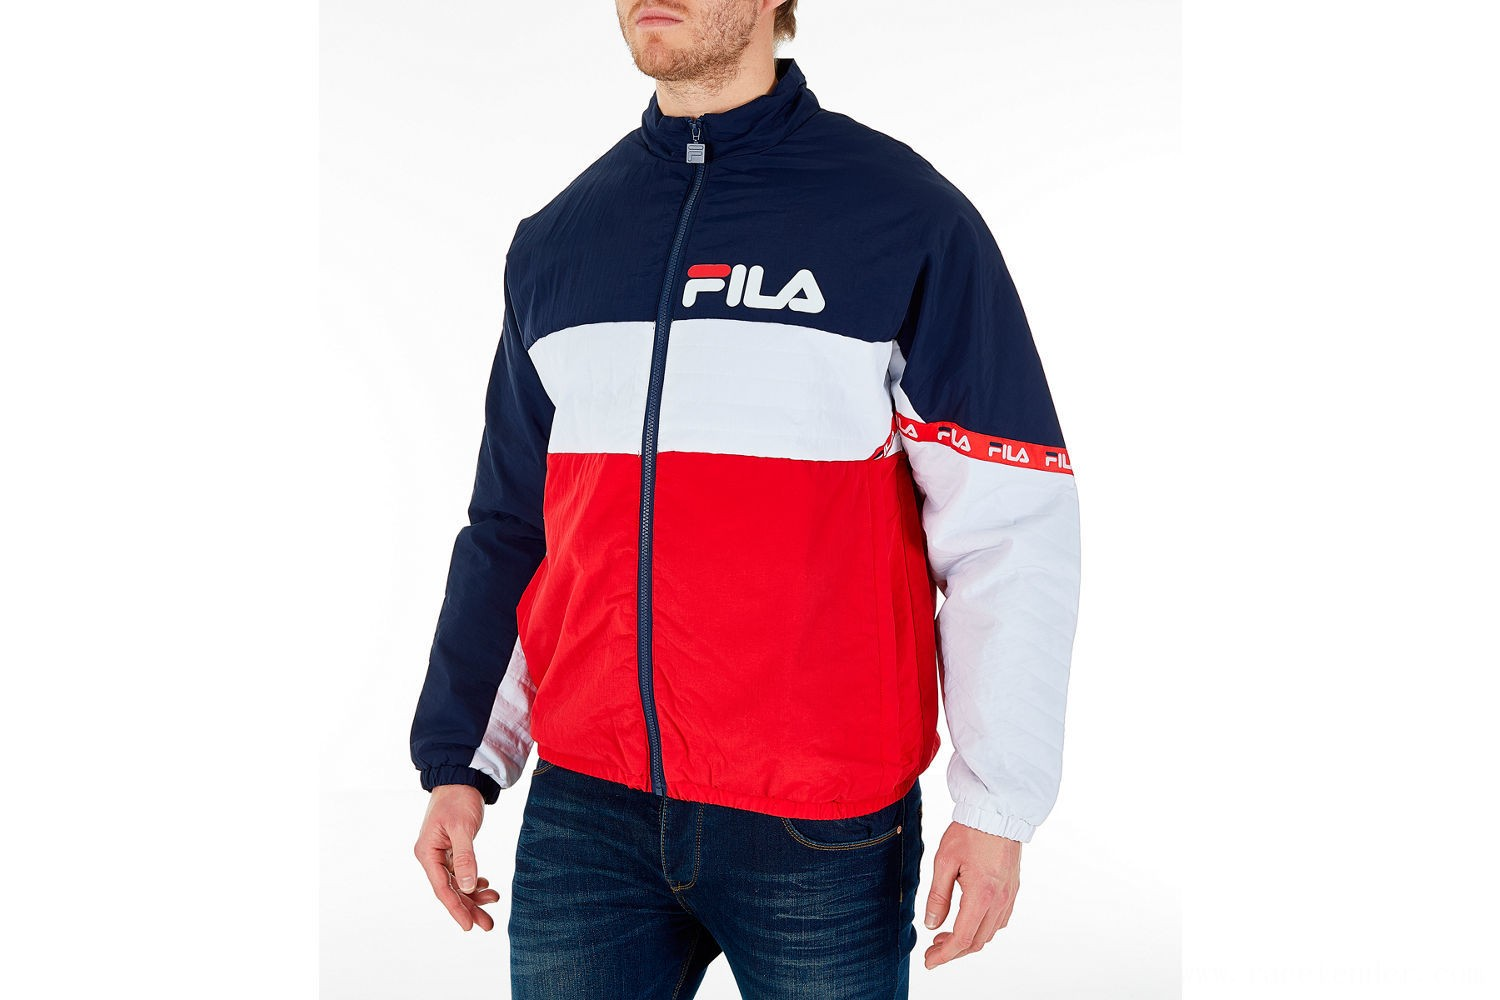 Fila Men's Jayden Full-Zip Jacket - Red/Navy/White